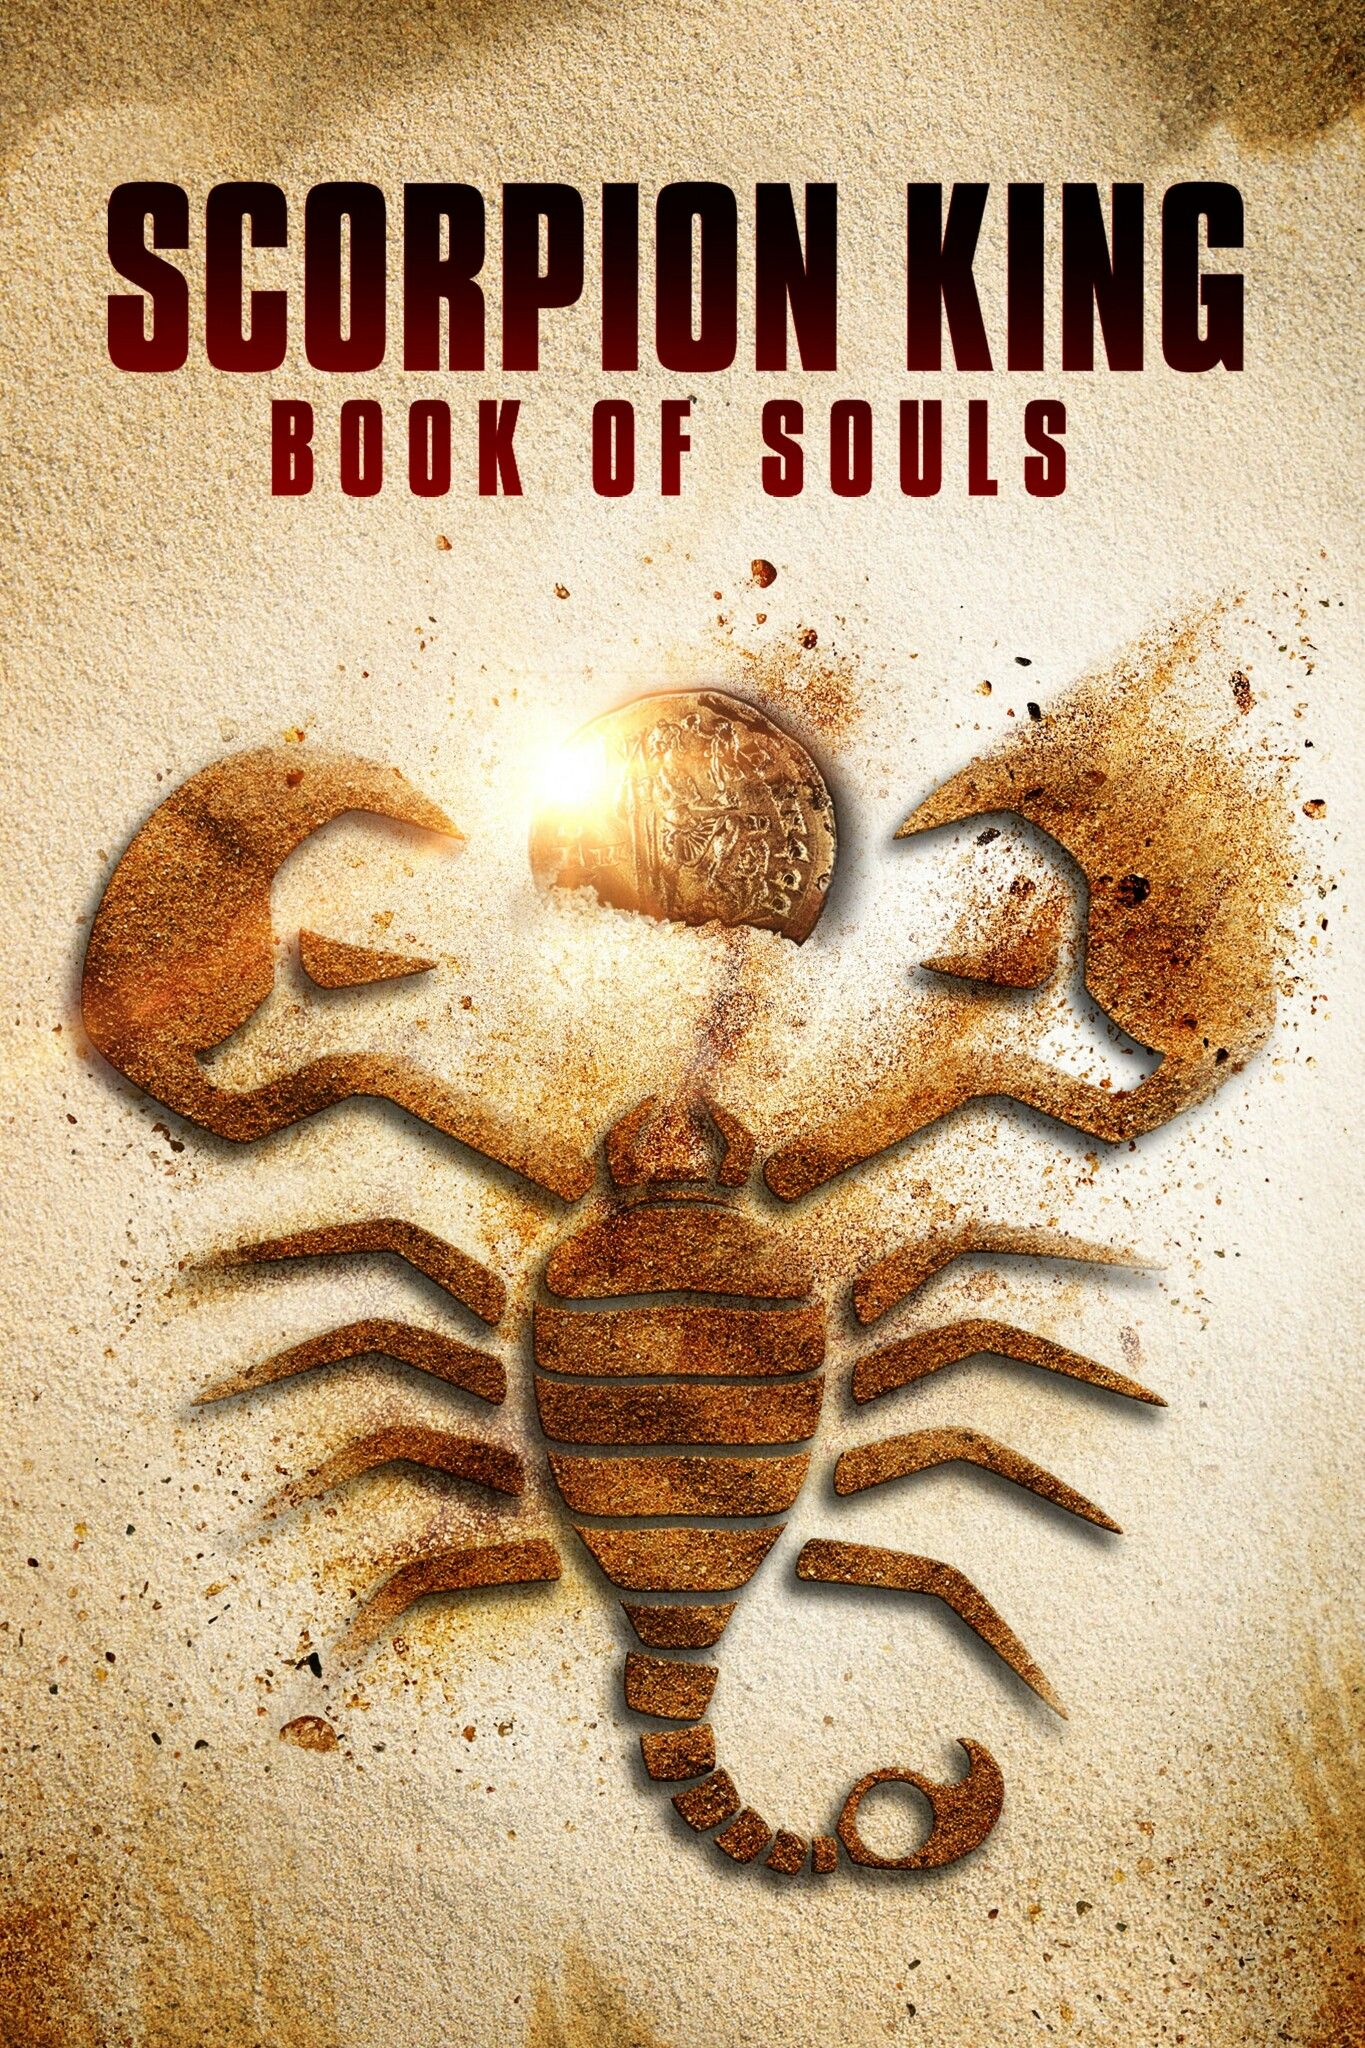 Scorpian King Book Of Souls Movie Poster Scorpianking Fantastic Movie Posters Scifimovies Posters Horrormovies Posters Act King Book Kings Movie Soul Movie